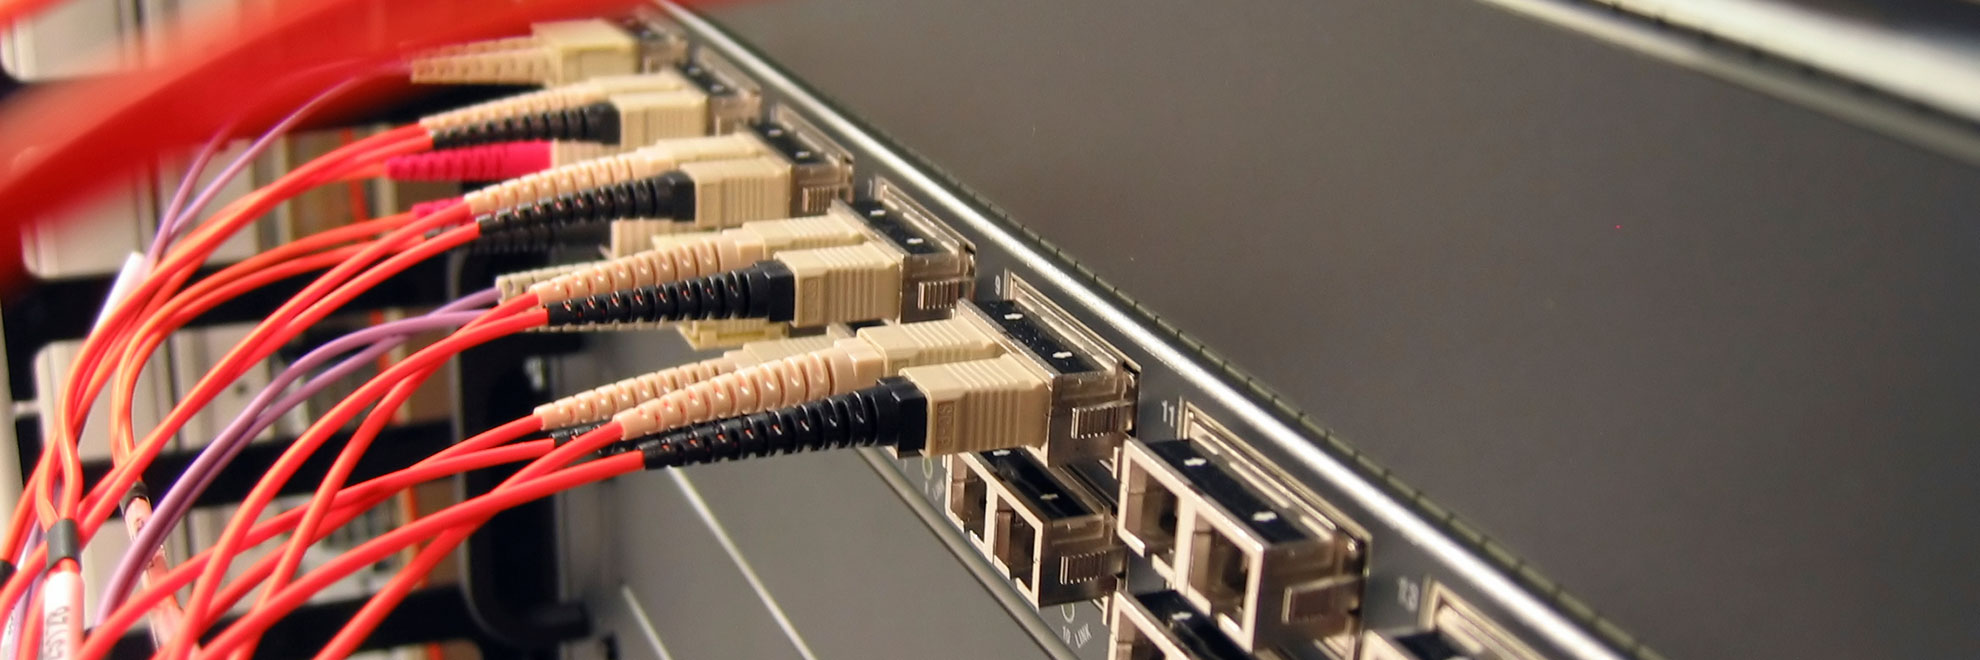 optical network ports